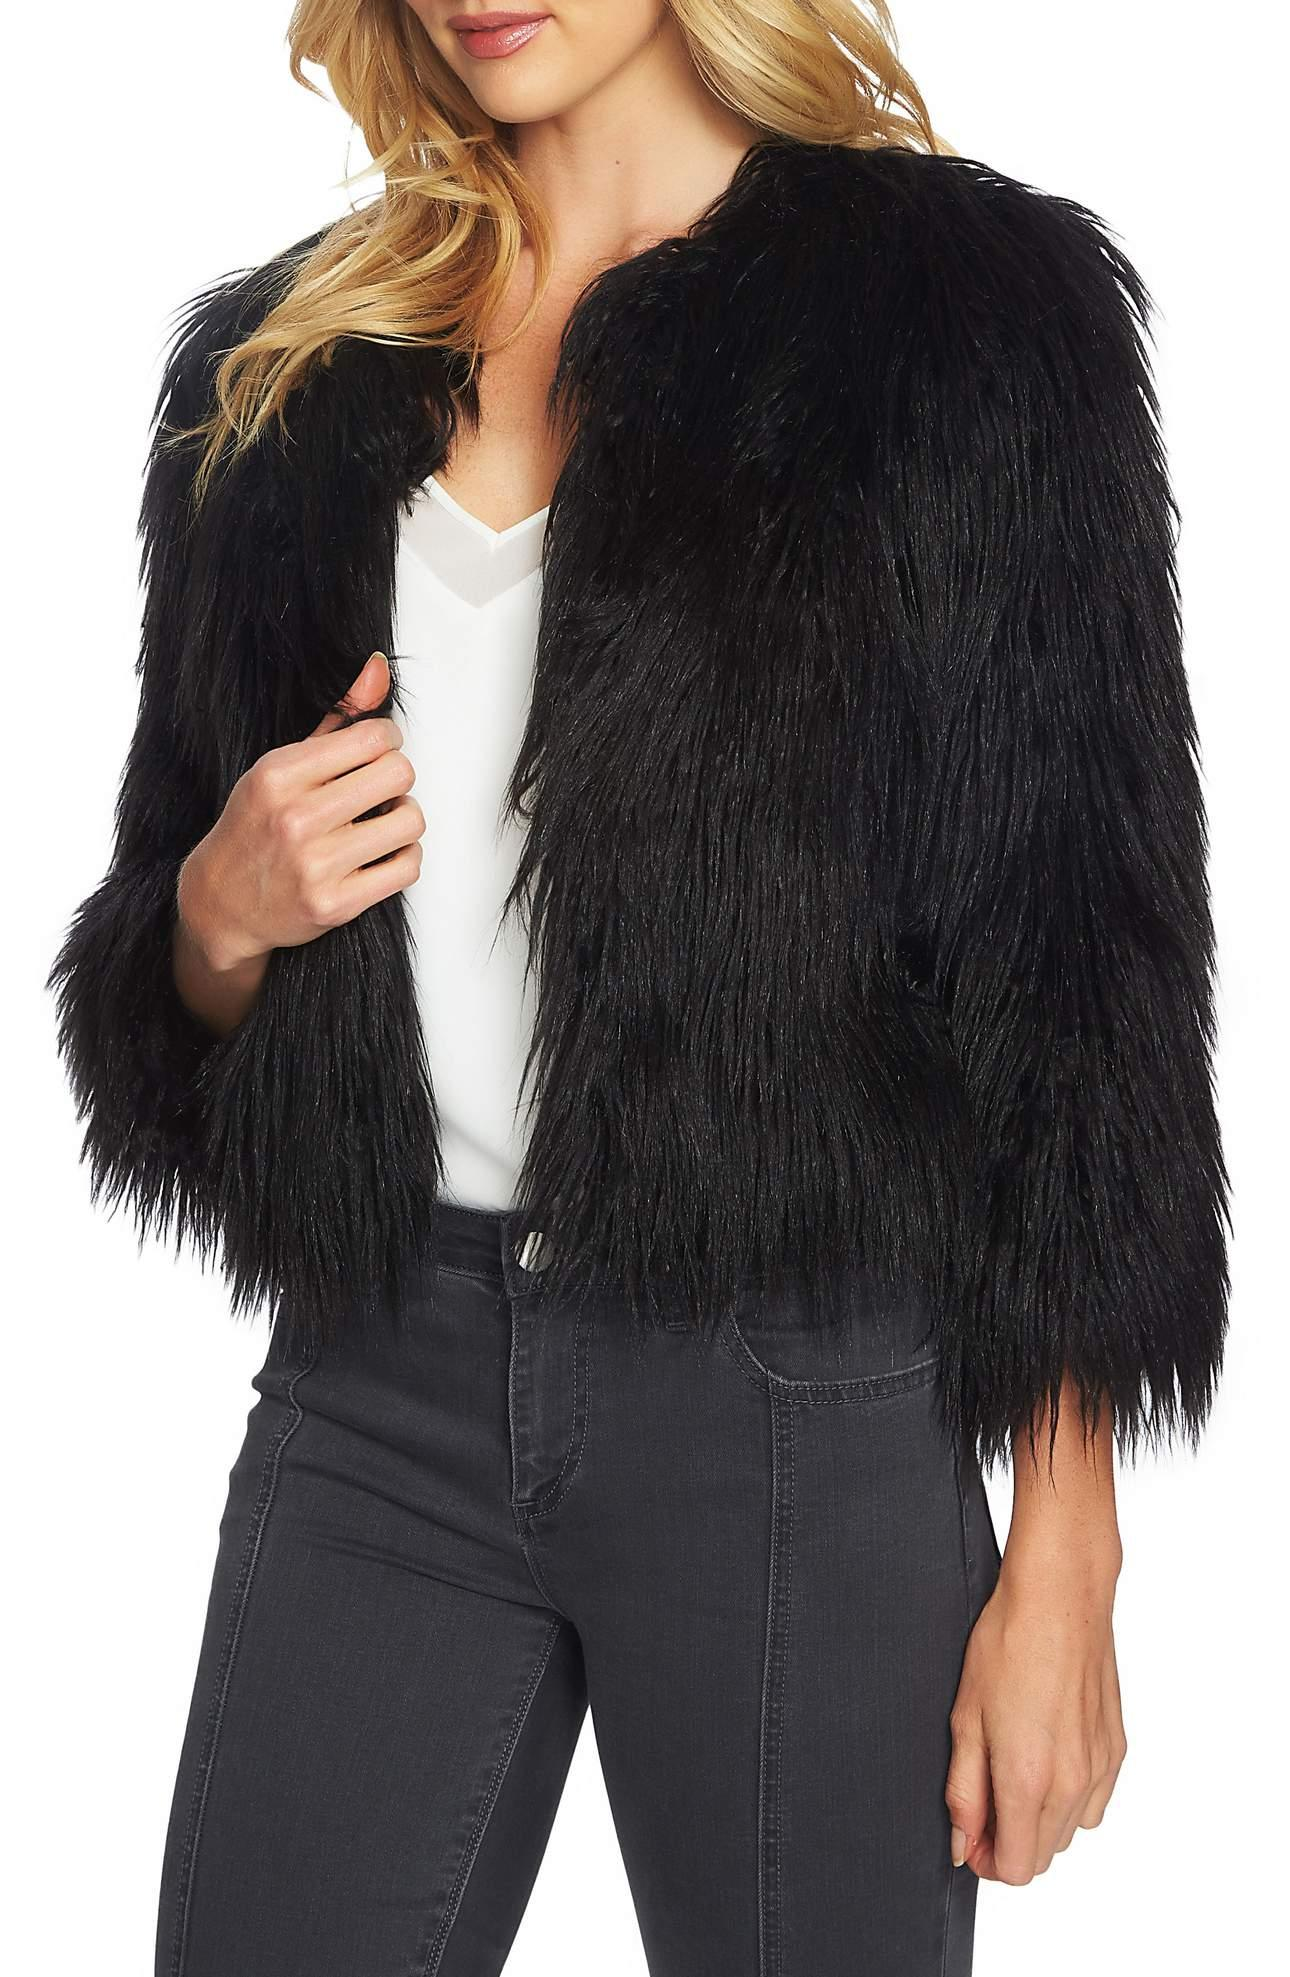 <p>Crop Faux Fur Jacket - $159. This screams Sex and the City!{&amp;nbsp;}A not so simple jacket makes the most glamorous topper in sumptuous faux fur, while bracelet sleeves are perfect for showing off your favorite wristwear. Love! (Image: Nordstrom){&amp;nbsp;}</p><p></p>